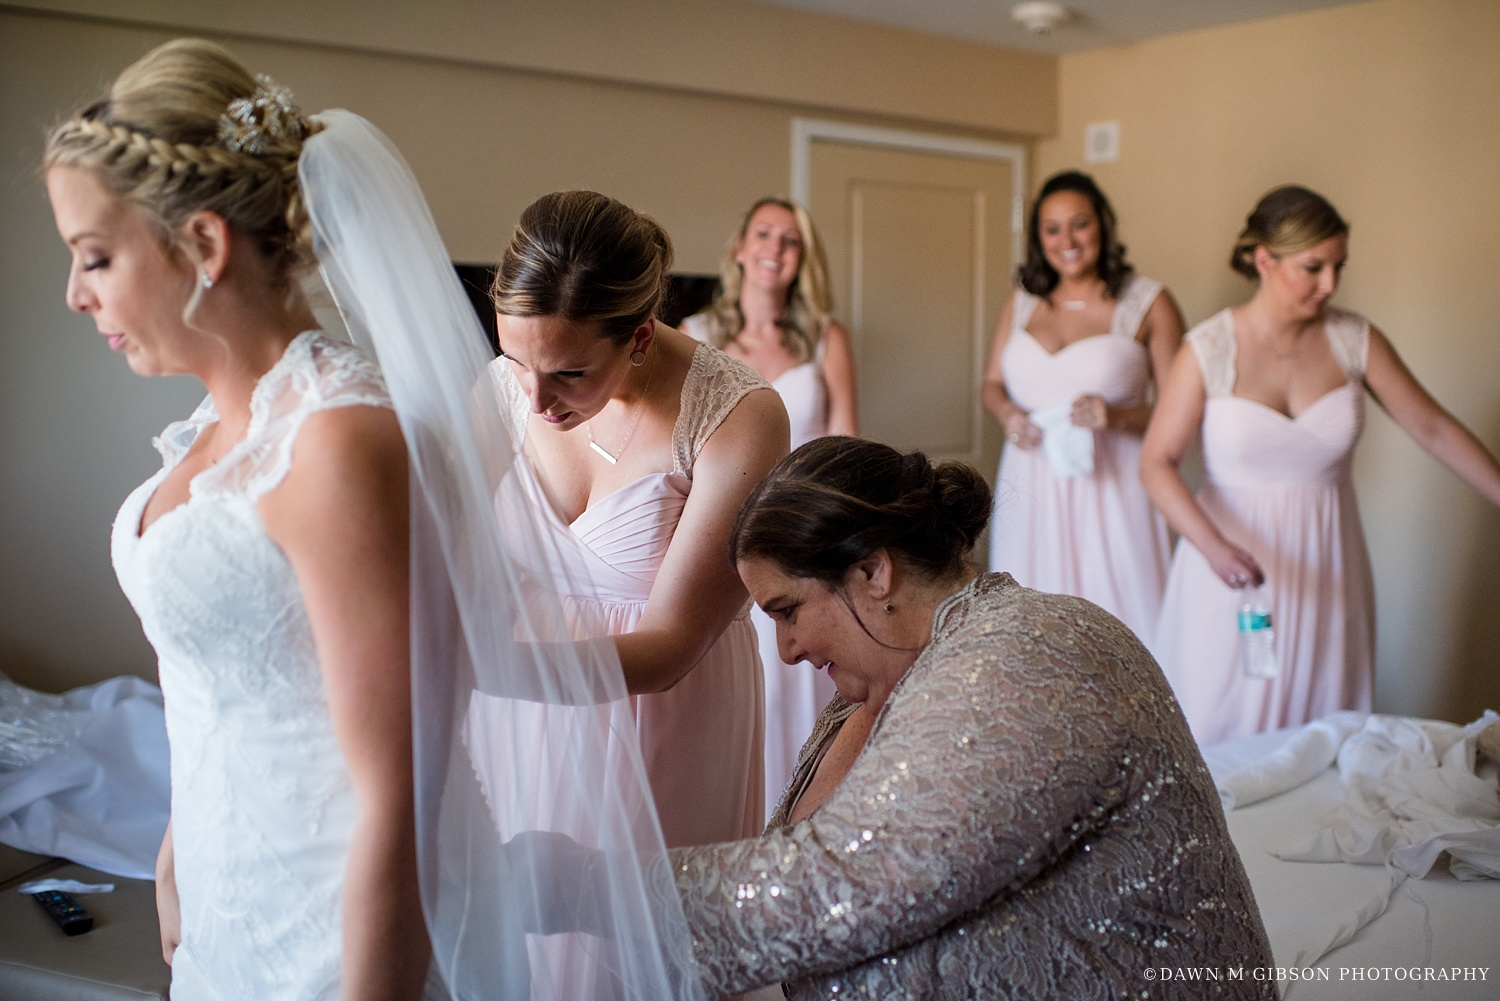 buffalo_wny_rochester_wedding_photographer_dawnmgibsonphotography_strathallan_colgate_rochester_divinity_rochester_wedding_venues_0007.jpg